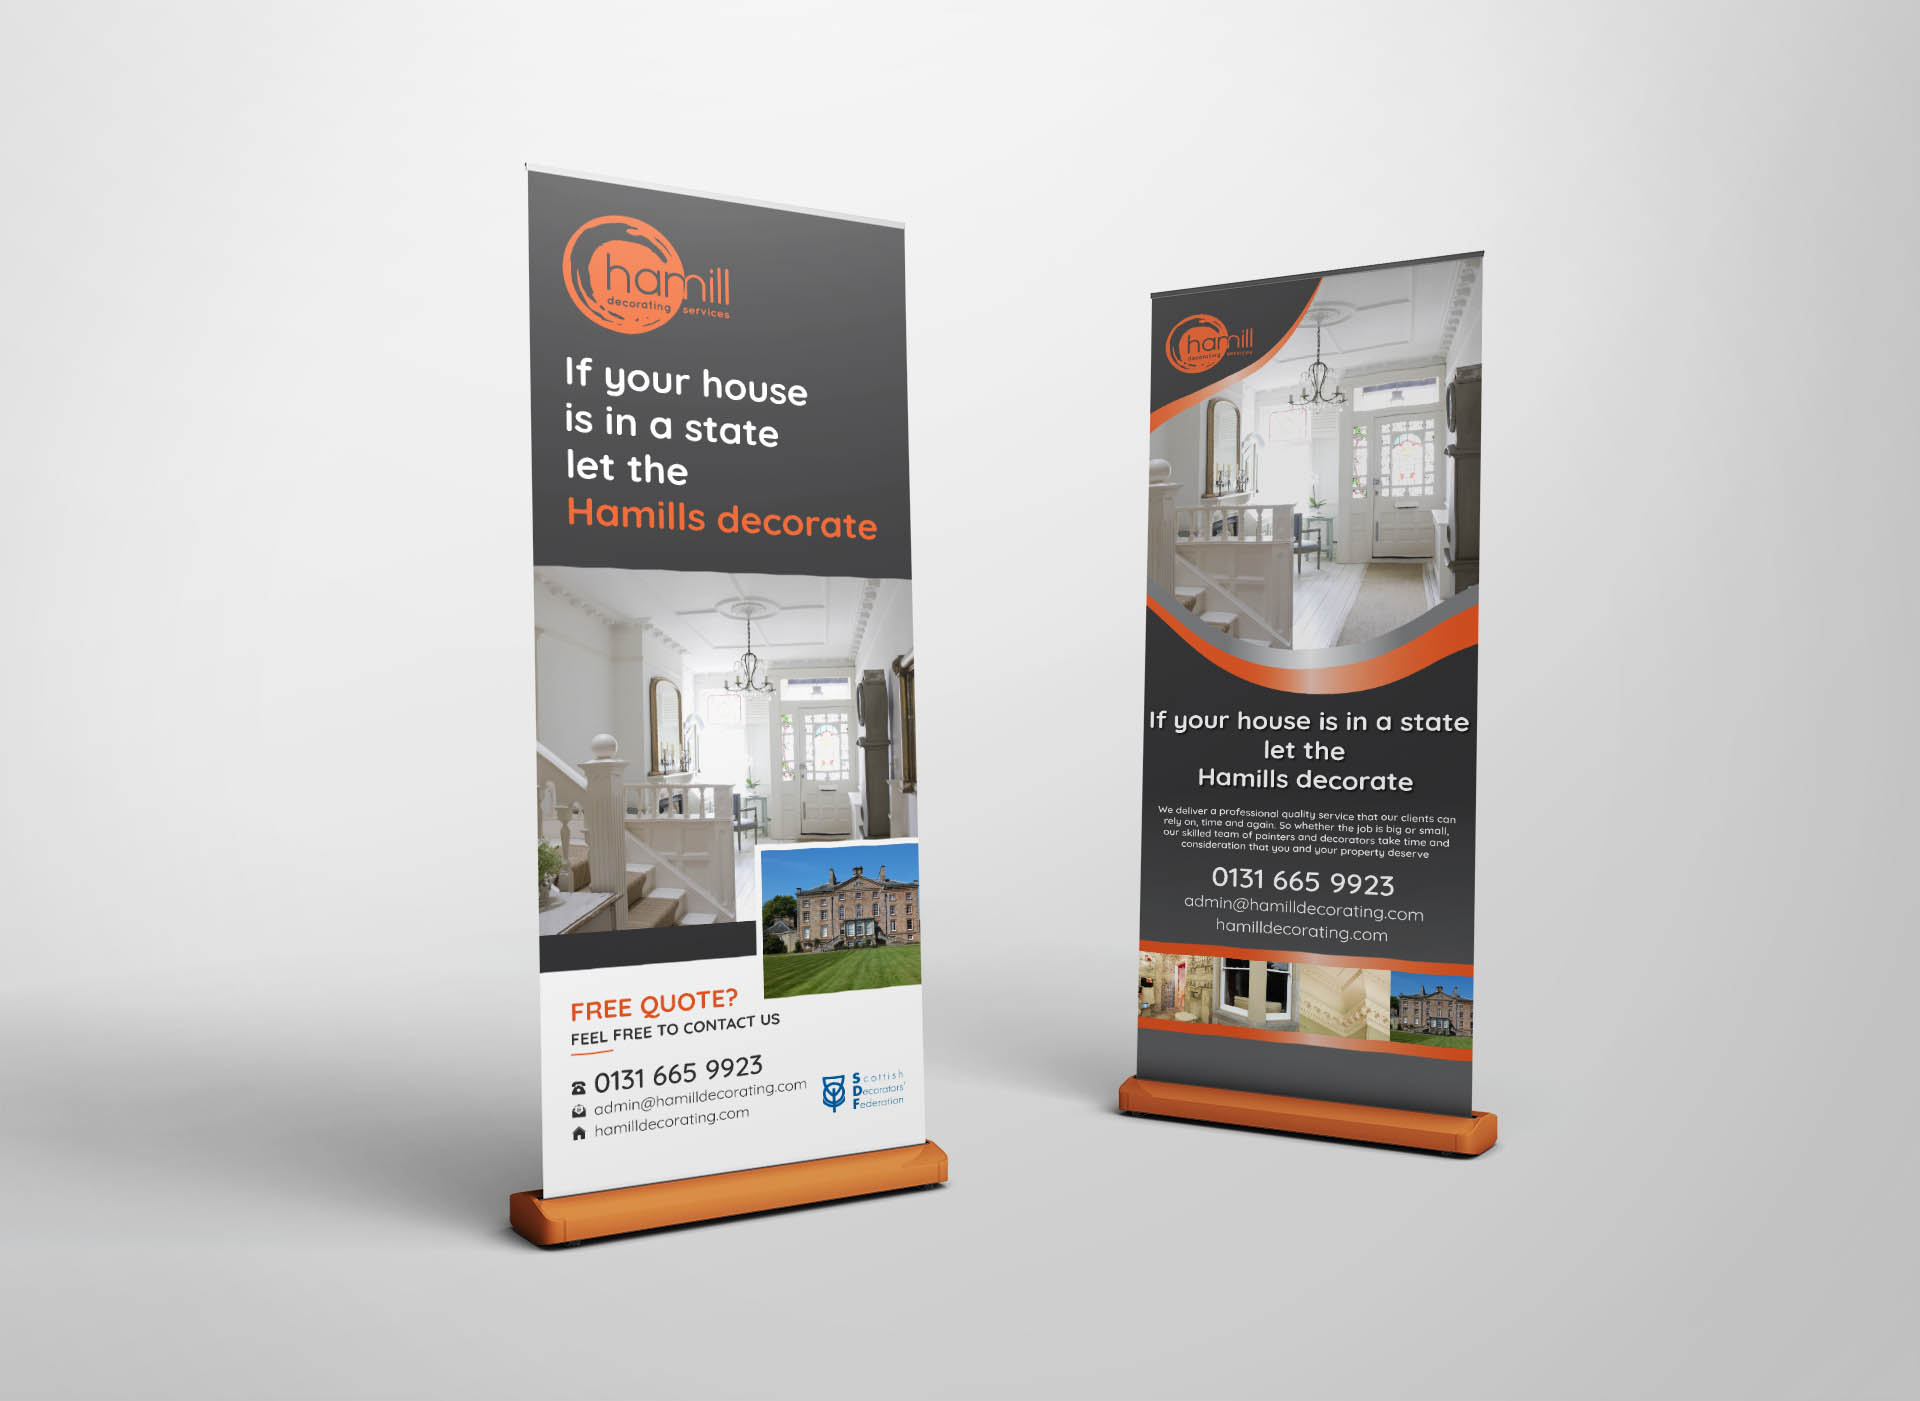 Hamill decorators edinburgh roller banners fearless creative